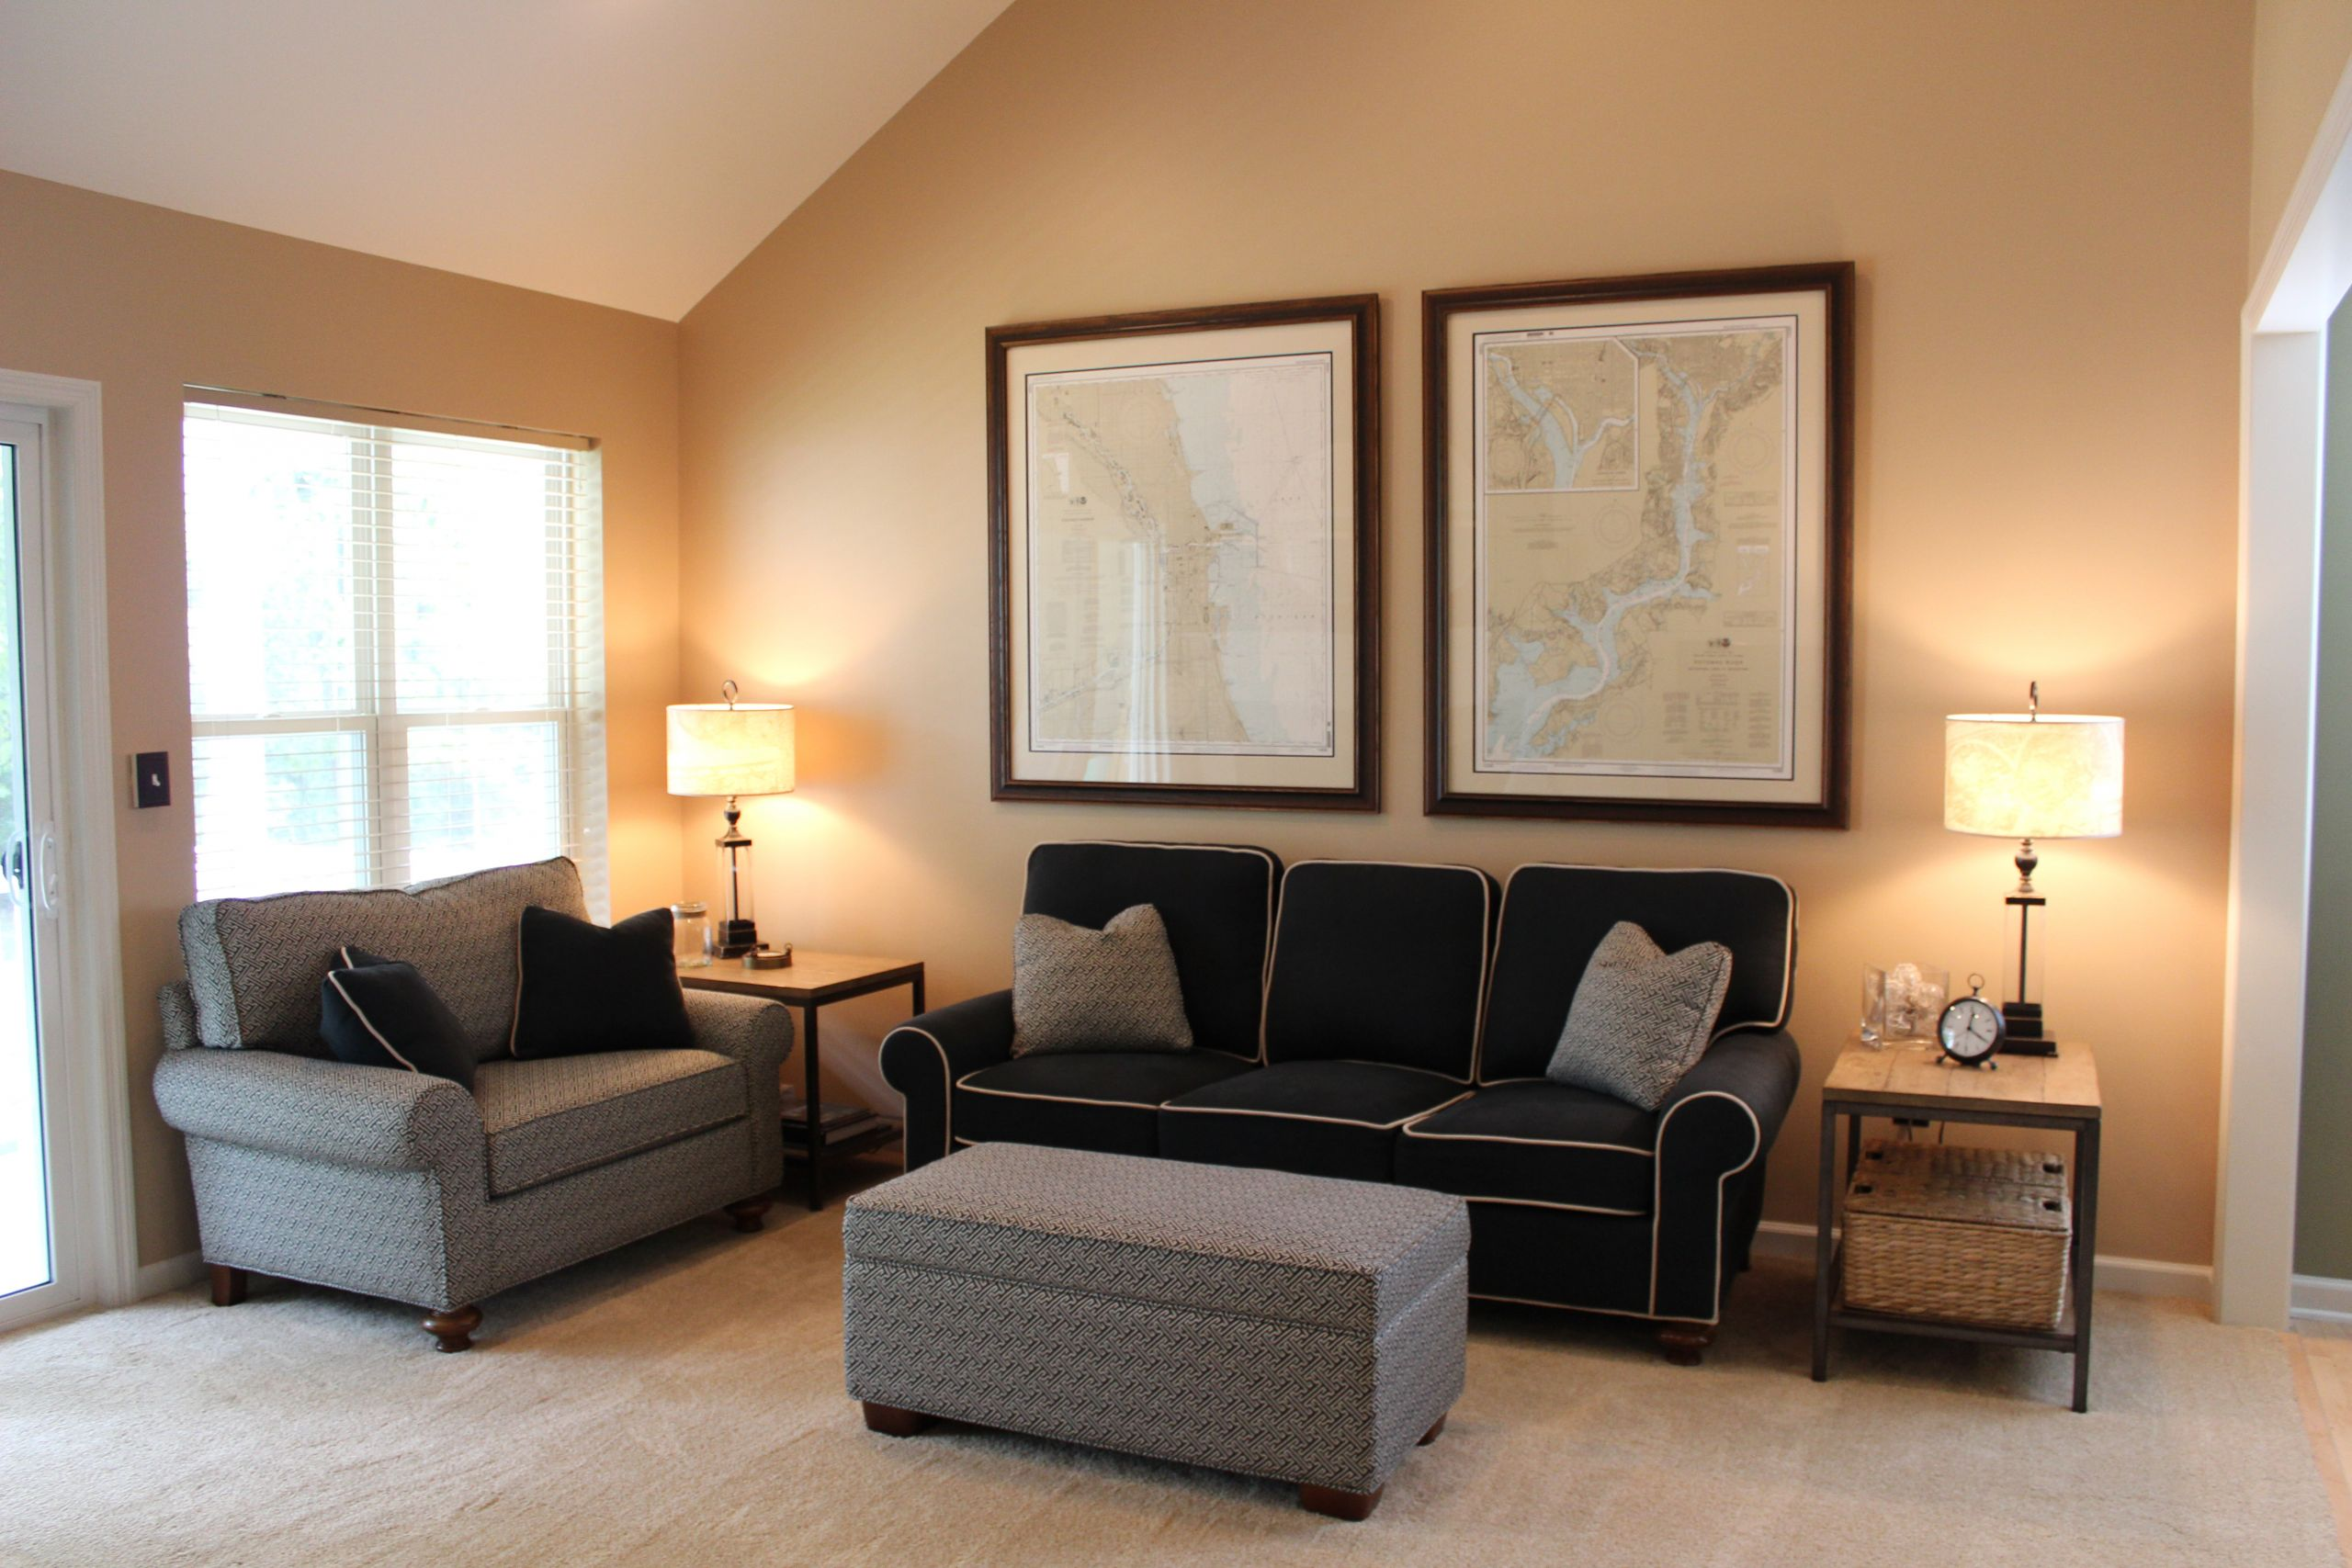 Living Room Wall Paint Colors Awesome 45 Best Interior Paint Colors Ideas